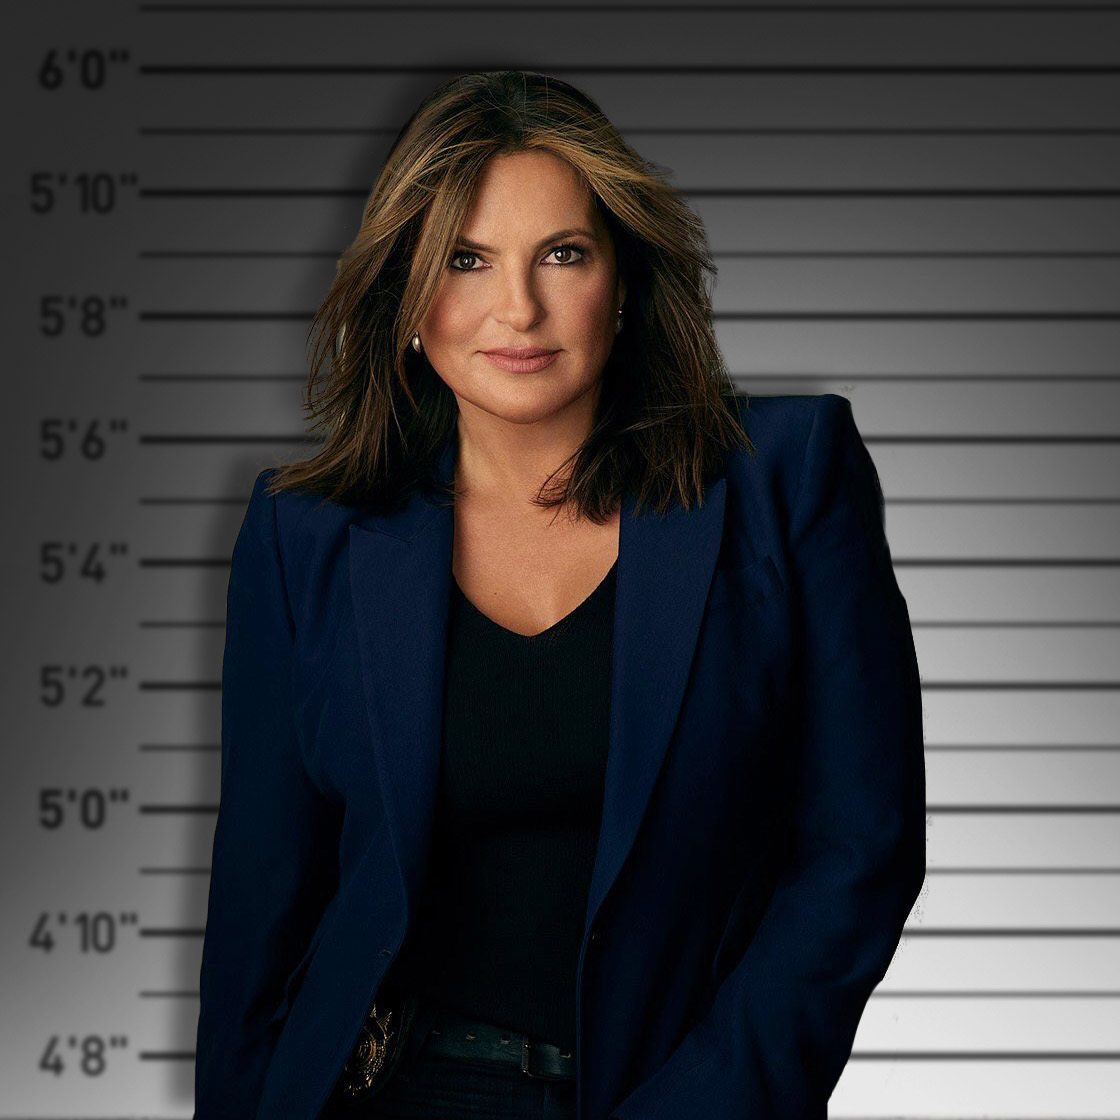 Fans, are you venturing out today? Remember to keep just over 1 Olivia Benson of space between yourselves.   #SVU #SVU22 ✌️✌️ https://t.co/YSVipuxifx